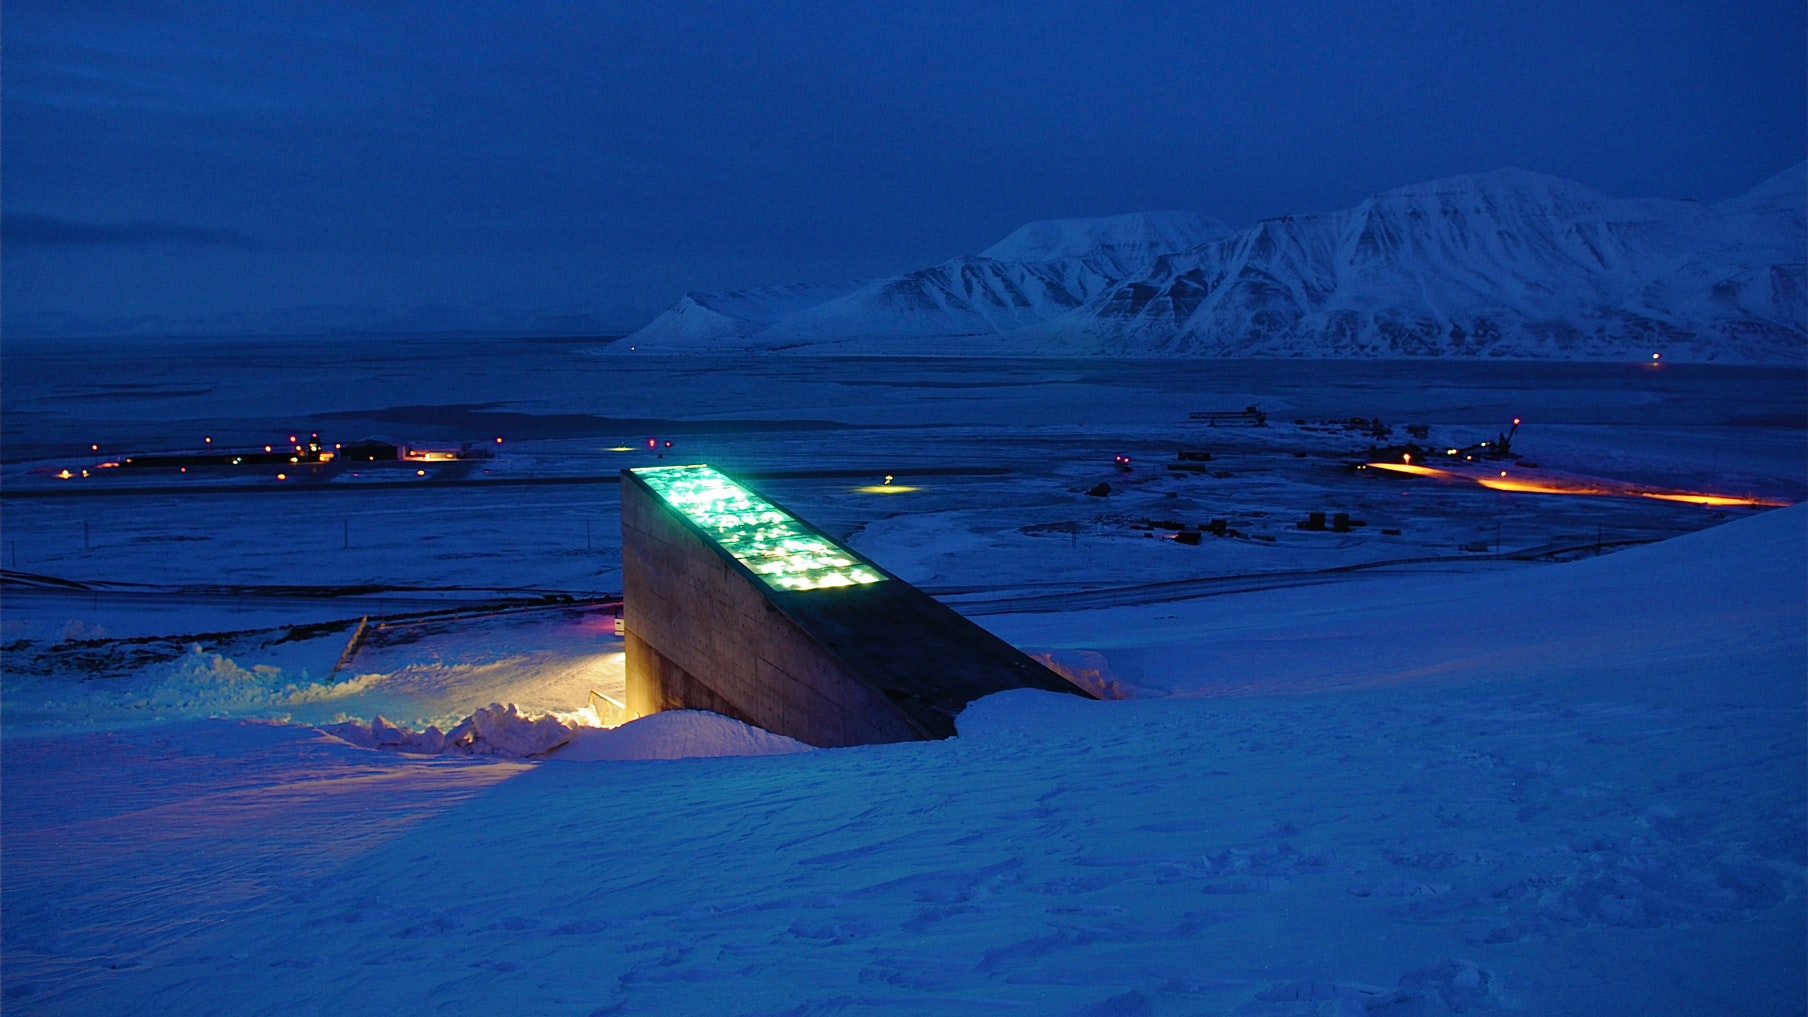 Norway's 'doomsday' seed vault is getting a multi-million pound upgrade